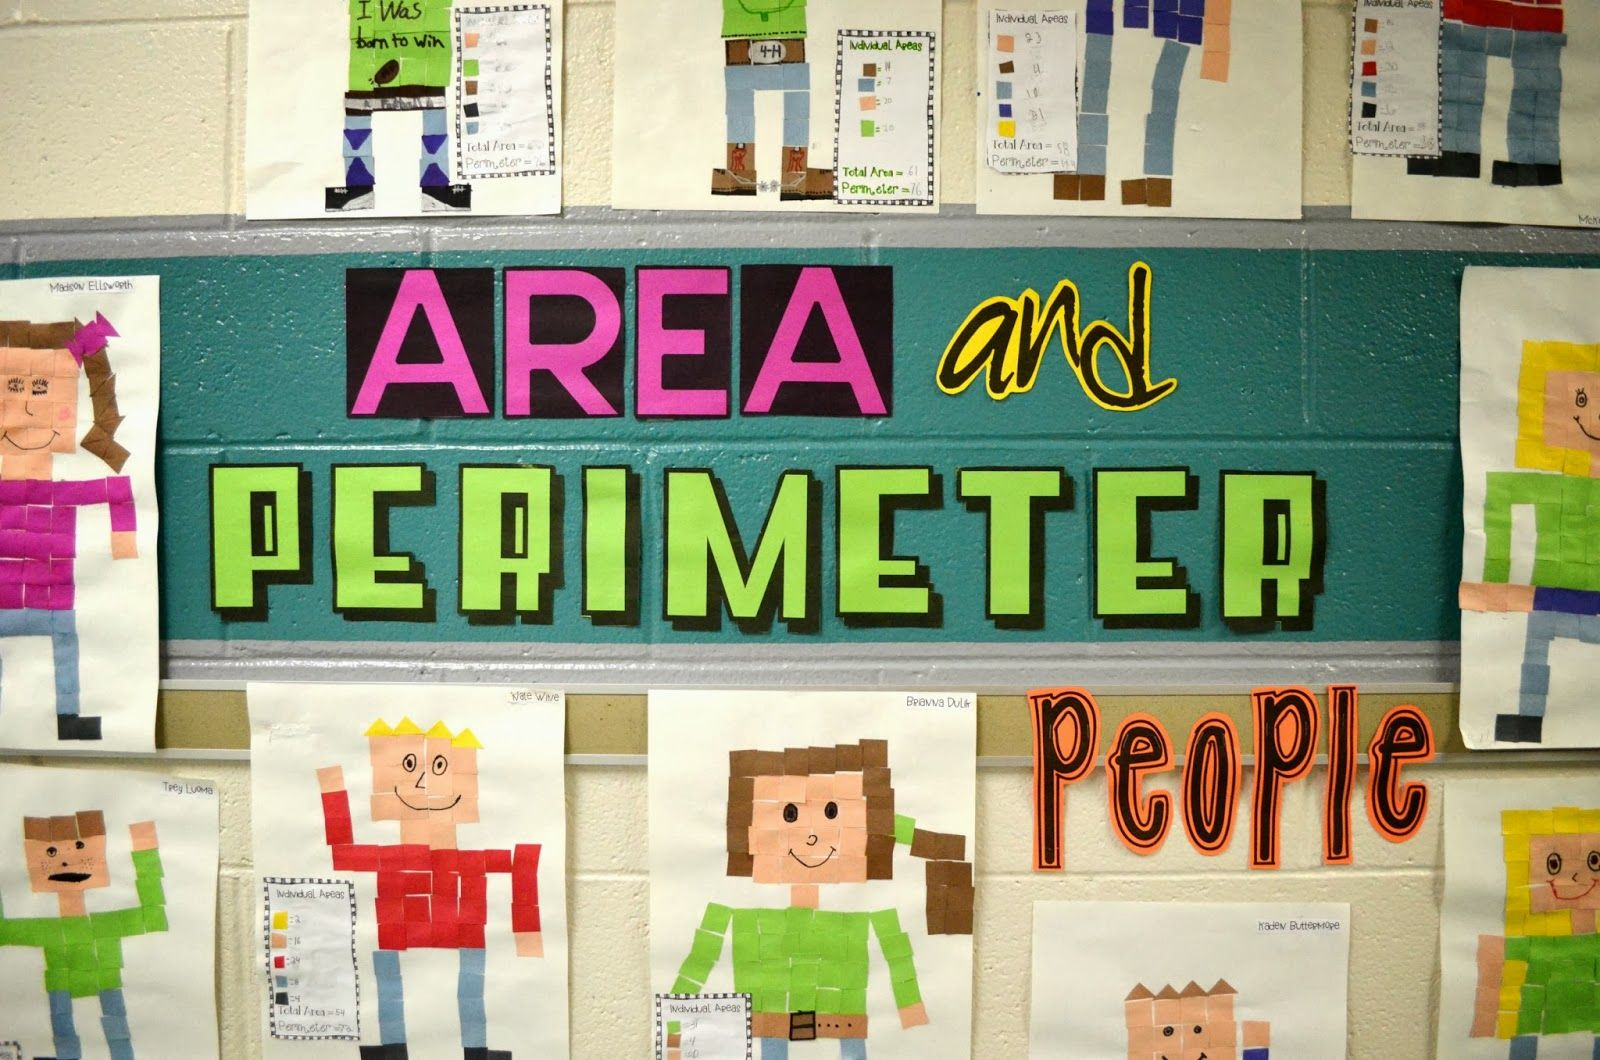 Area And Perimeter People This Is A 3rd Grade Classroom